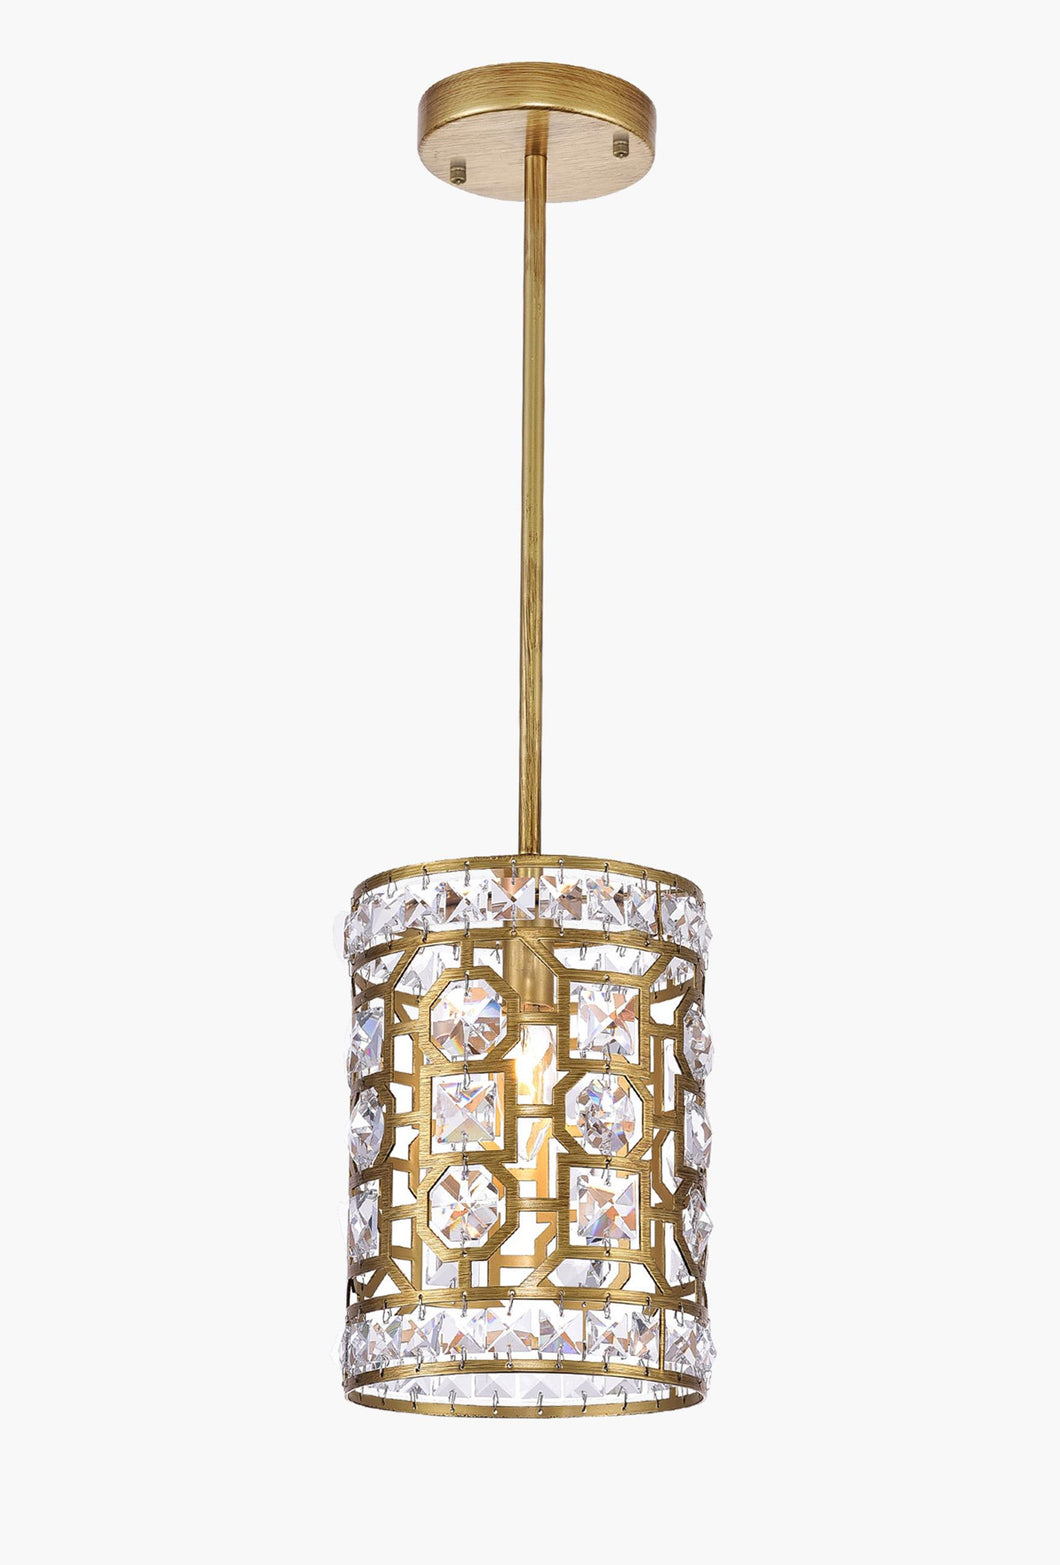 1 Light Pendant with Champagne Finish